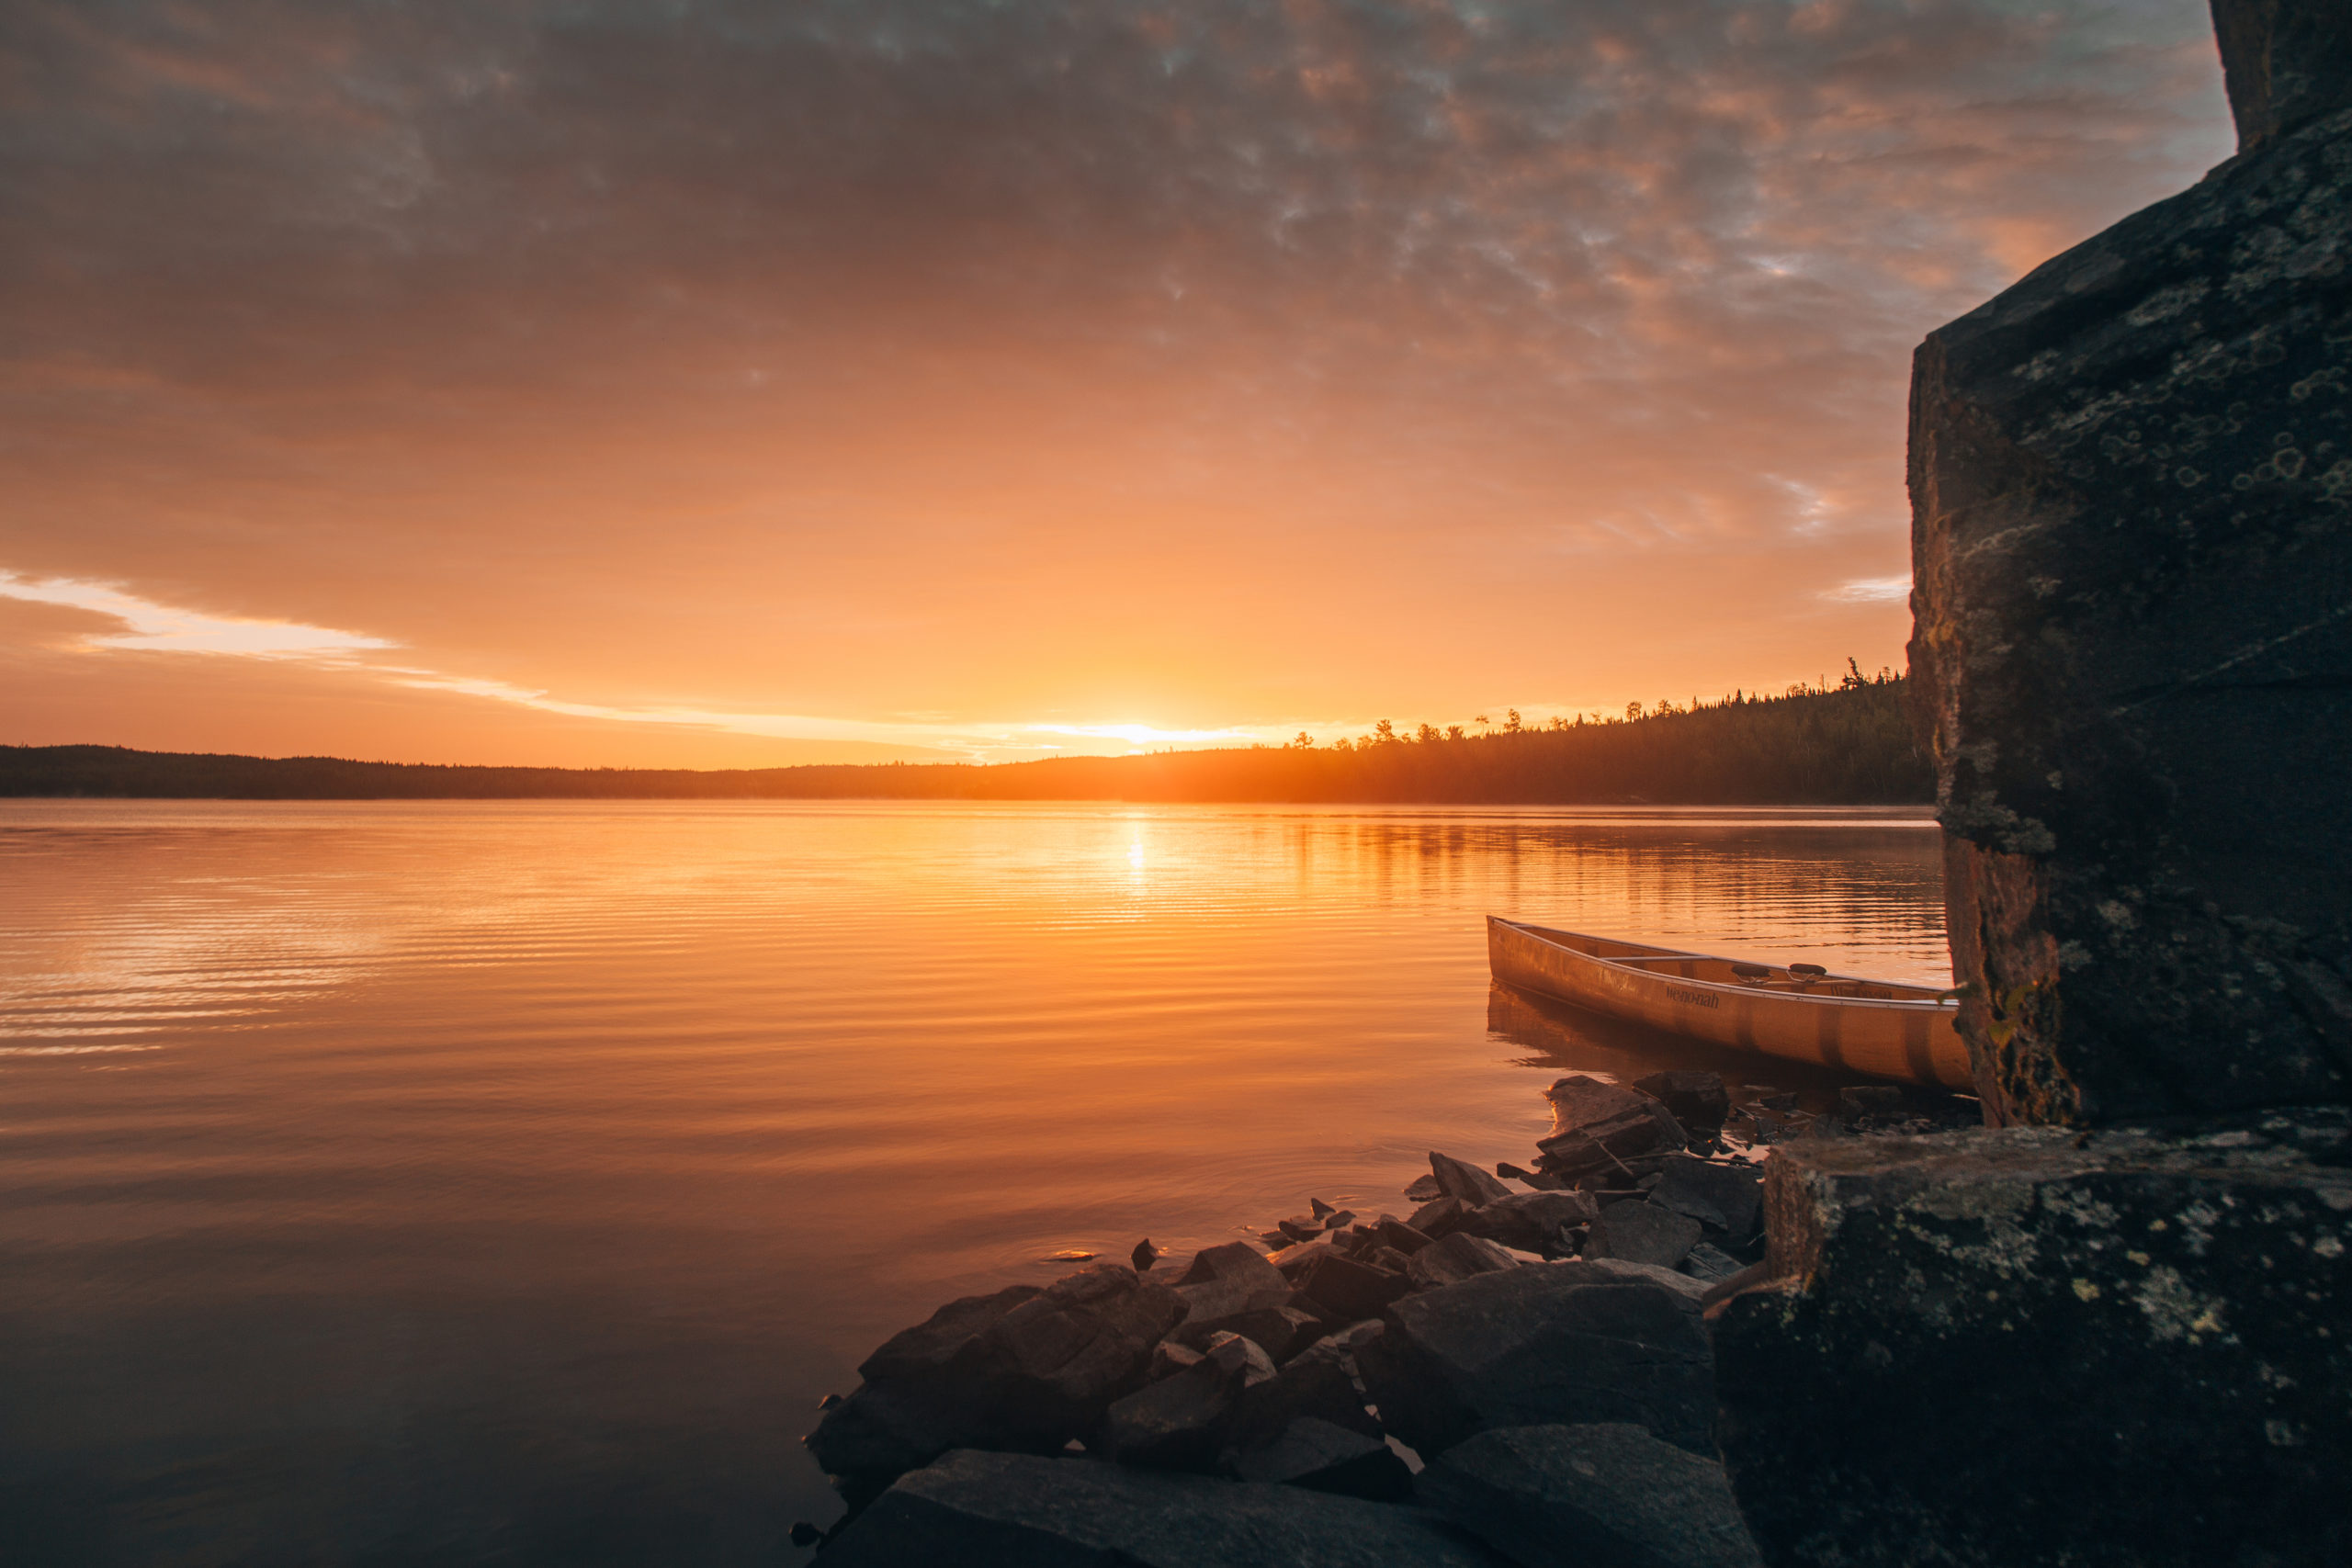 Places to Retire in Minnesota -  Lake at sunset with orange skies reflecting off the lake and a canoe resting on the shore, with trees and rocks surrounding the water